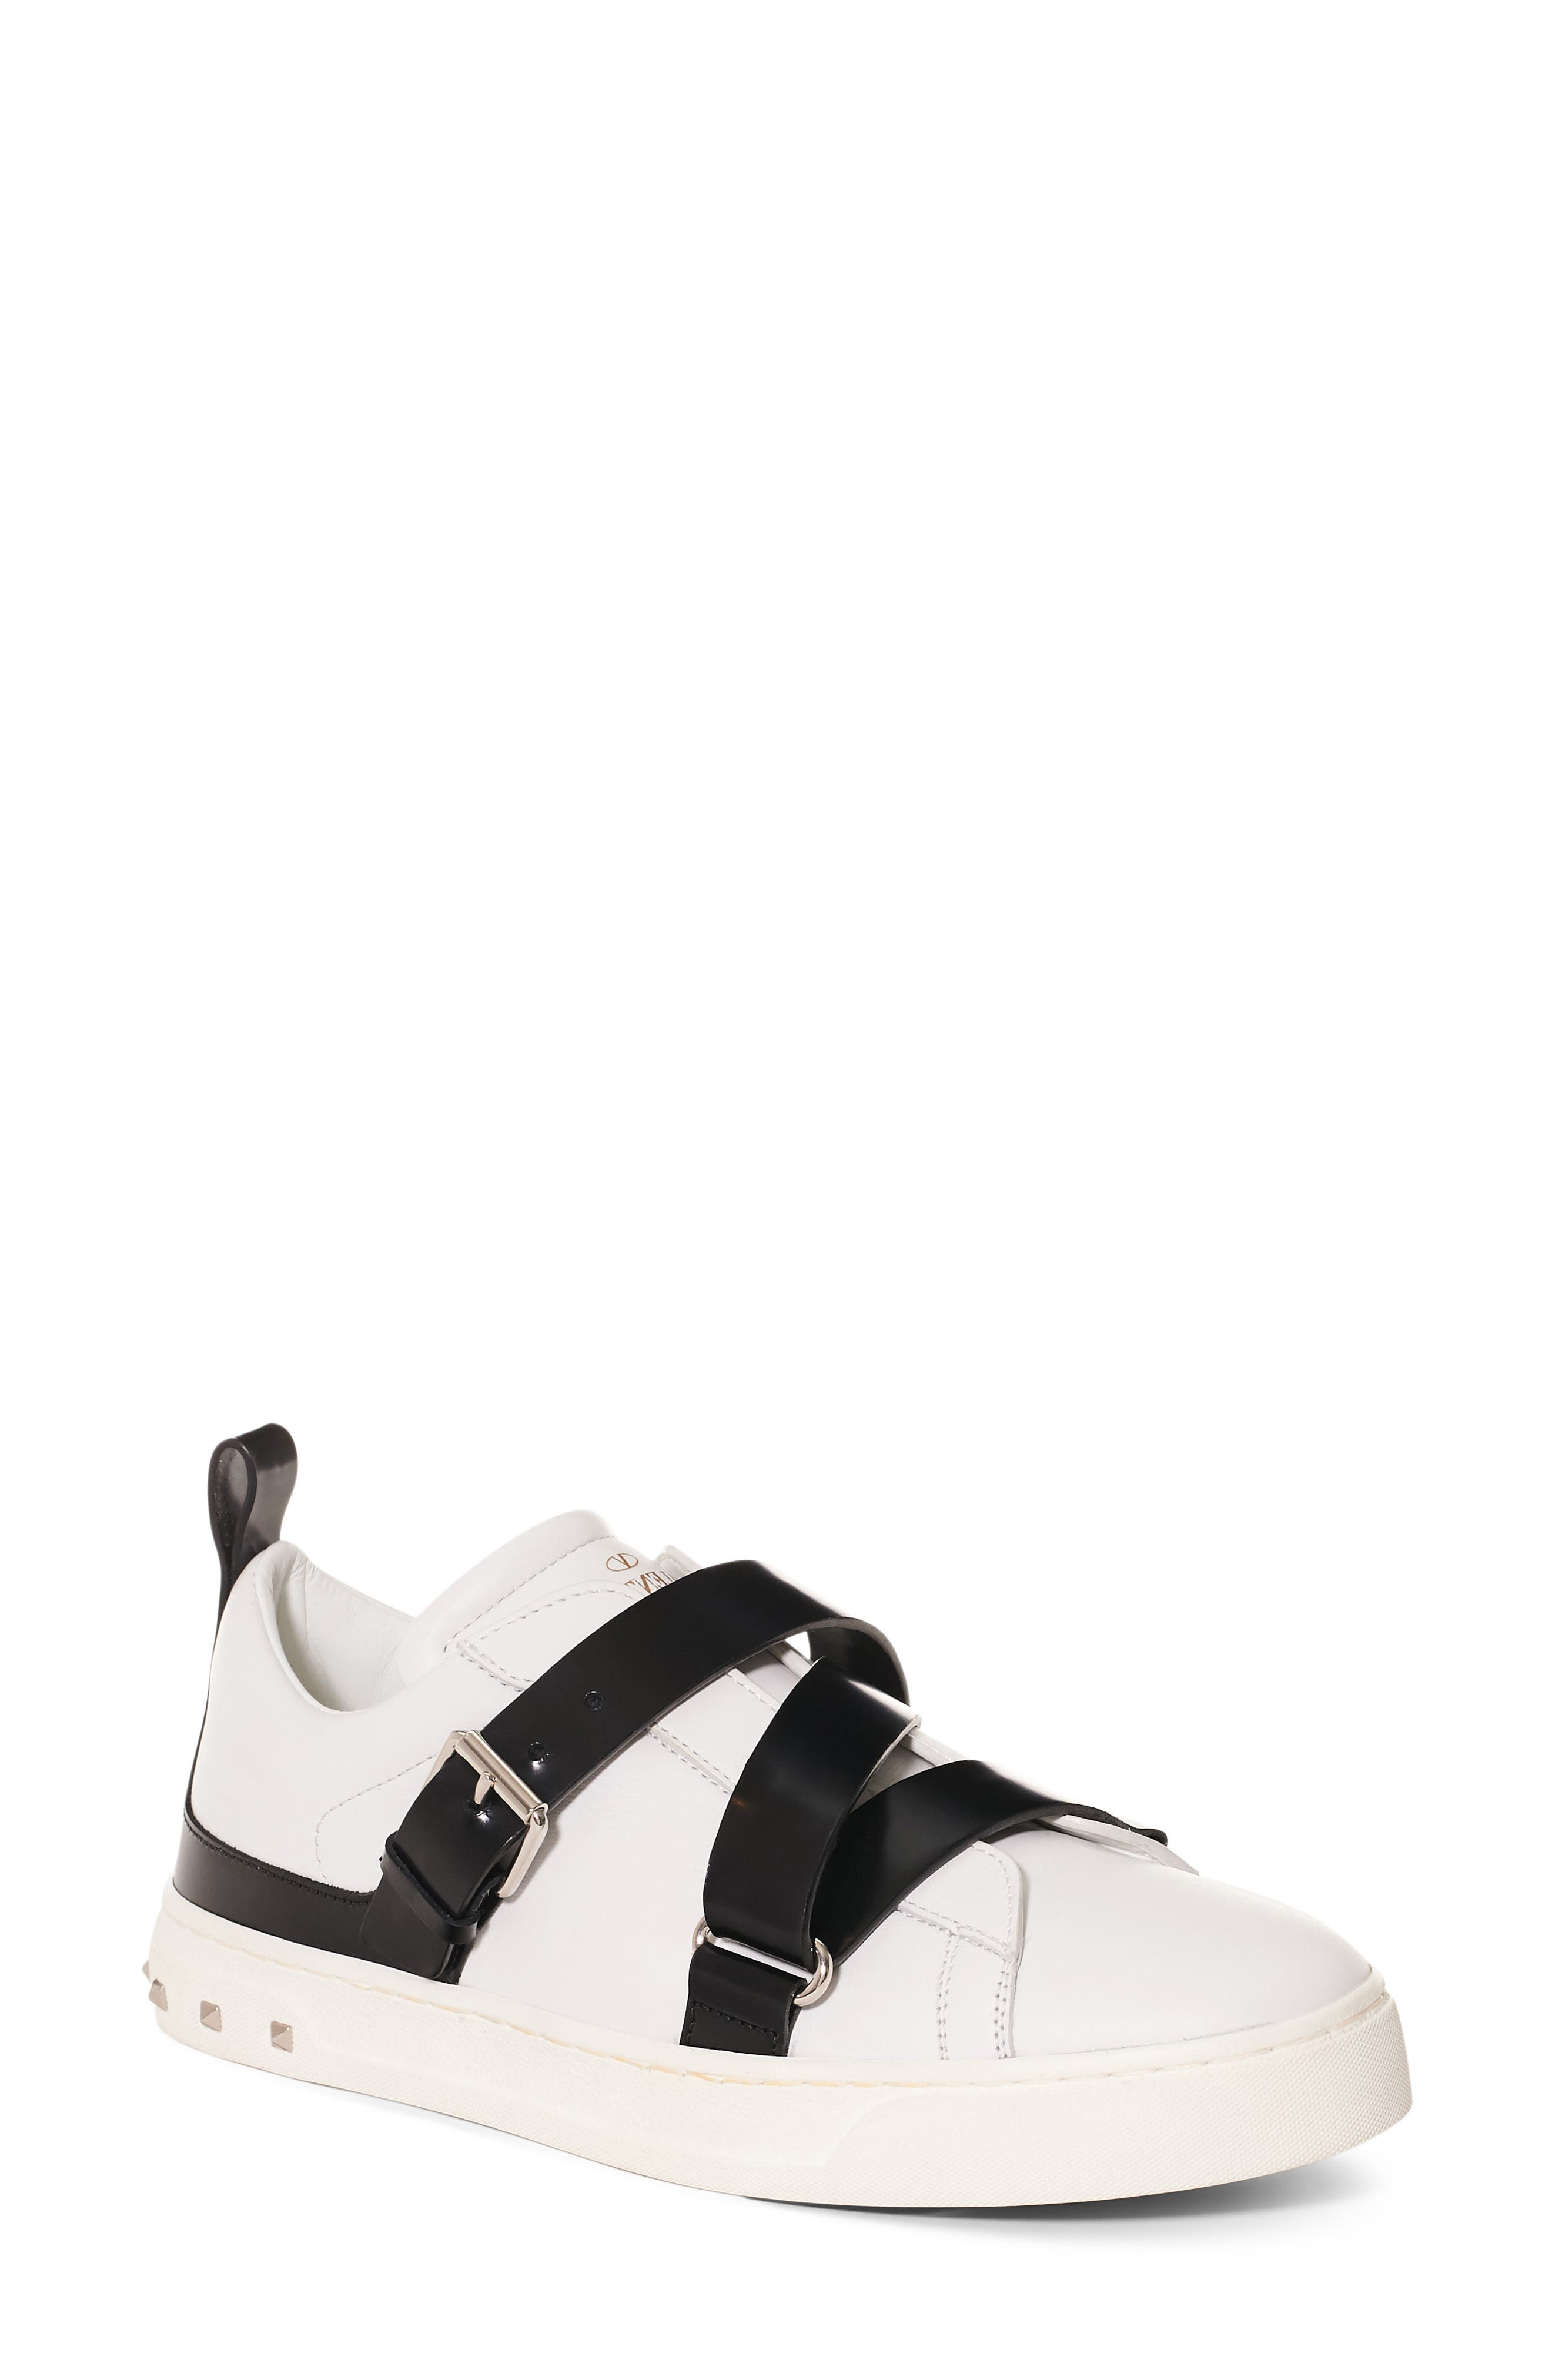 Alternate Image 1 Selected - VALENTINO GARAVANI Rockstud Strappy Sneaker (Women)